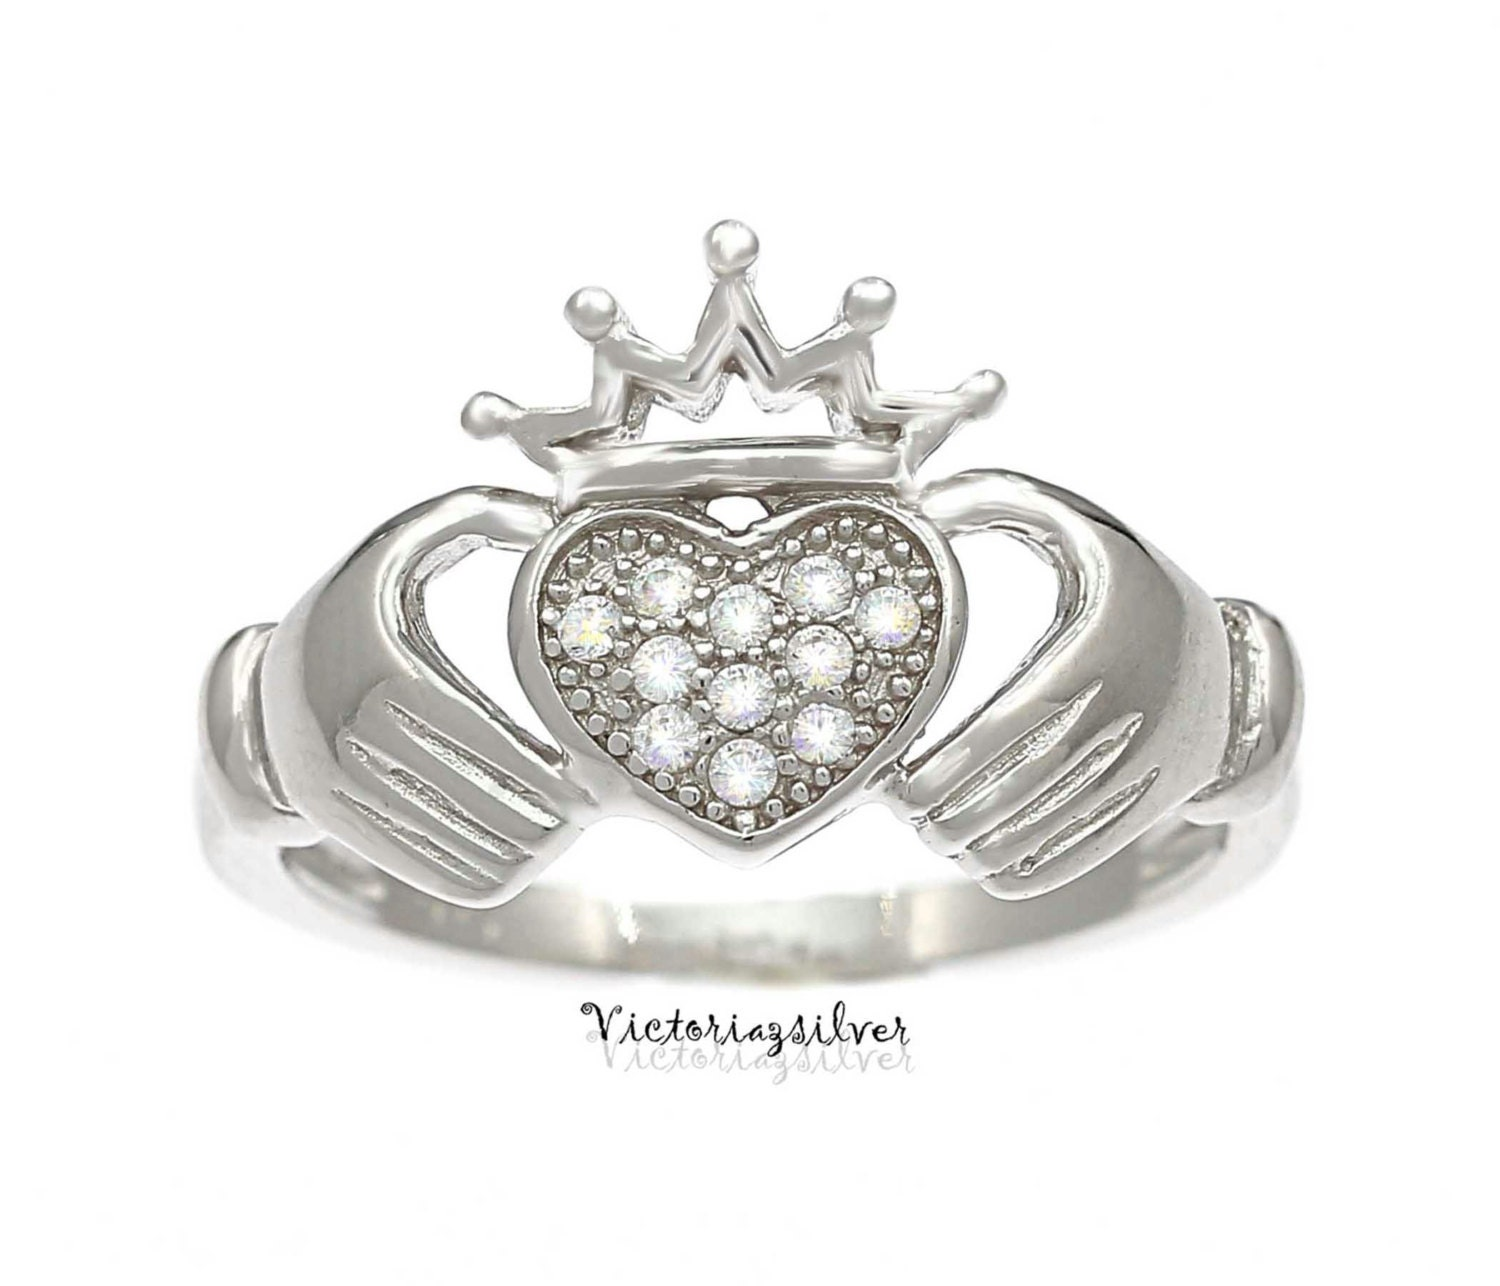 925 sterling silver claddagh ringsilver claddagh jewelry. Black Bedroom Furniture Sets. Home Design Ideas